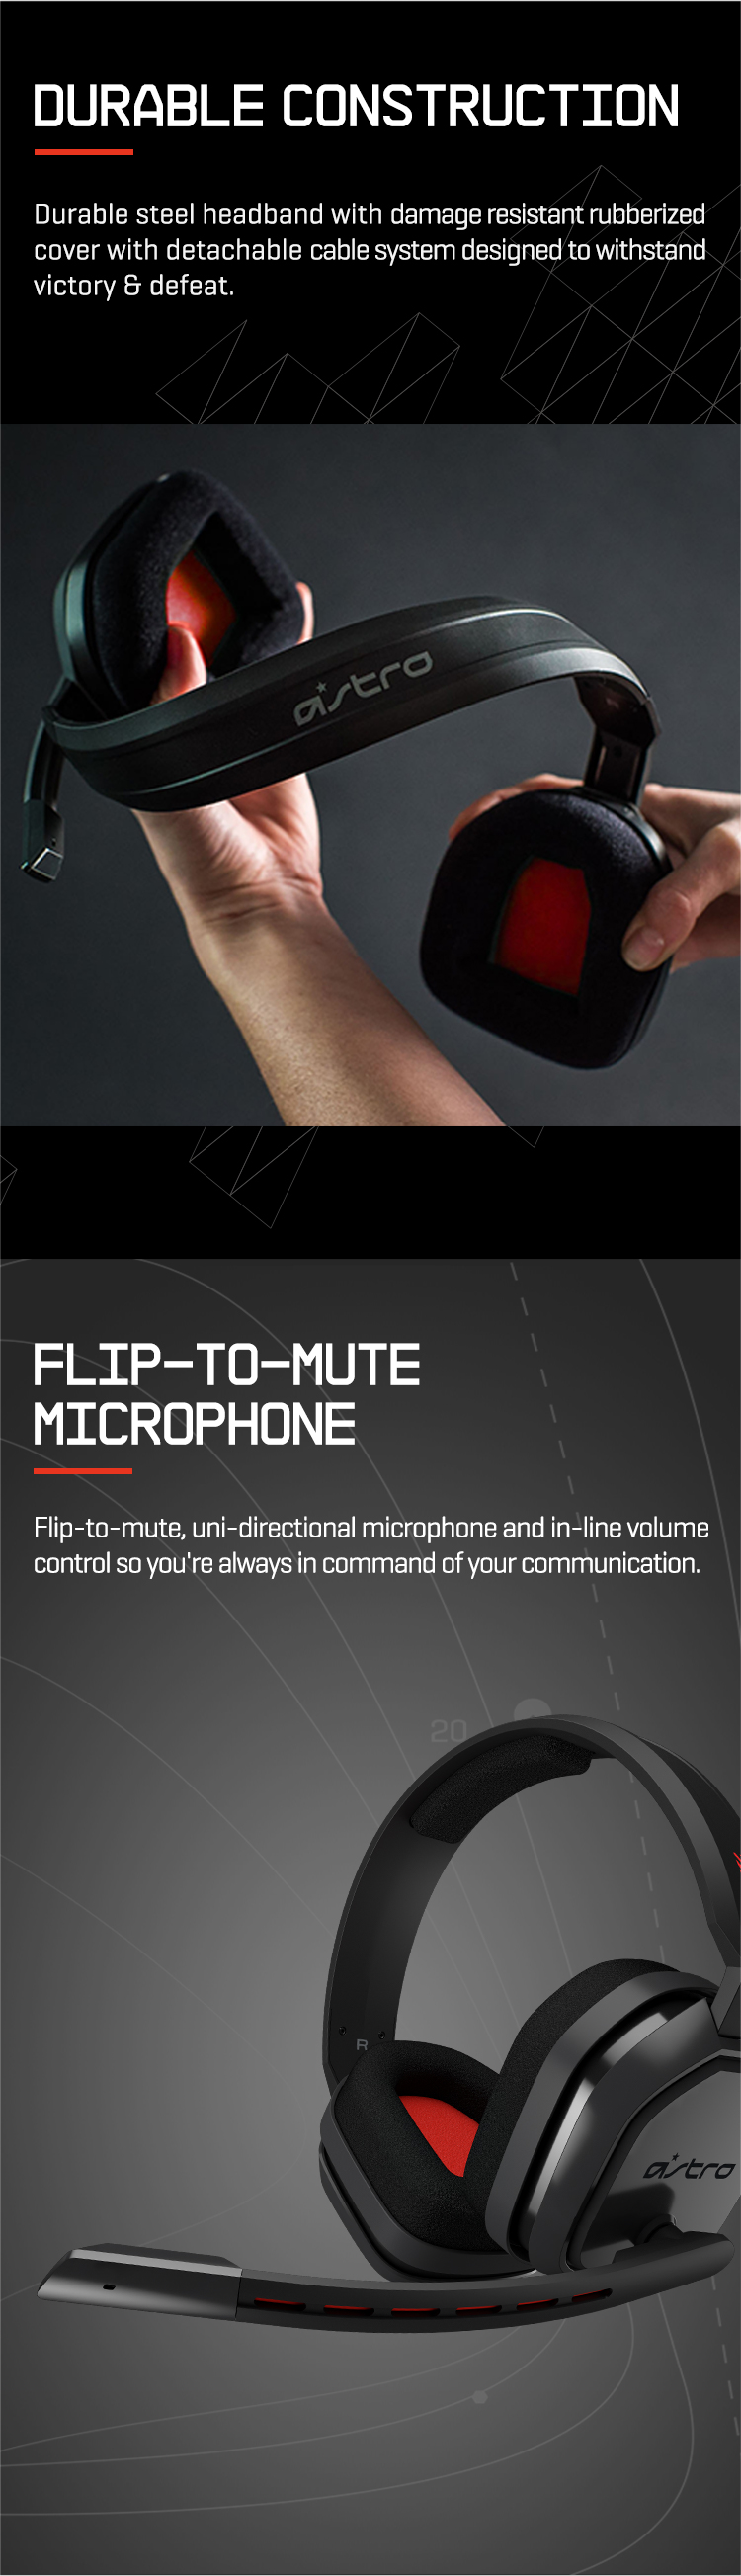 How To Mute Mic On Xbox One